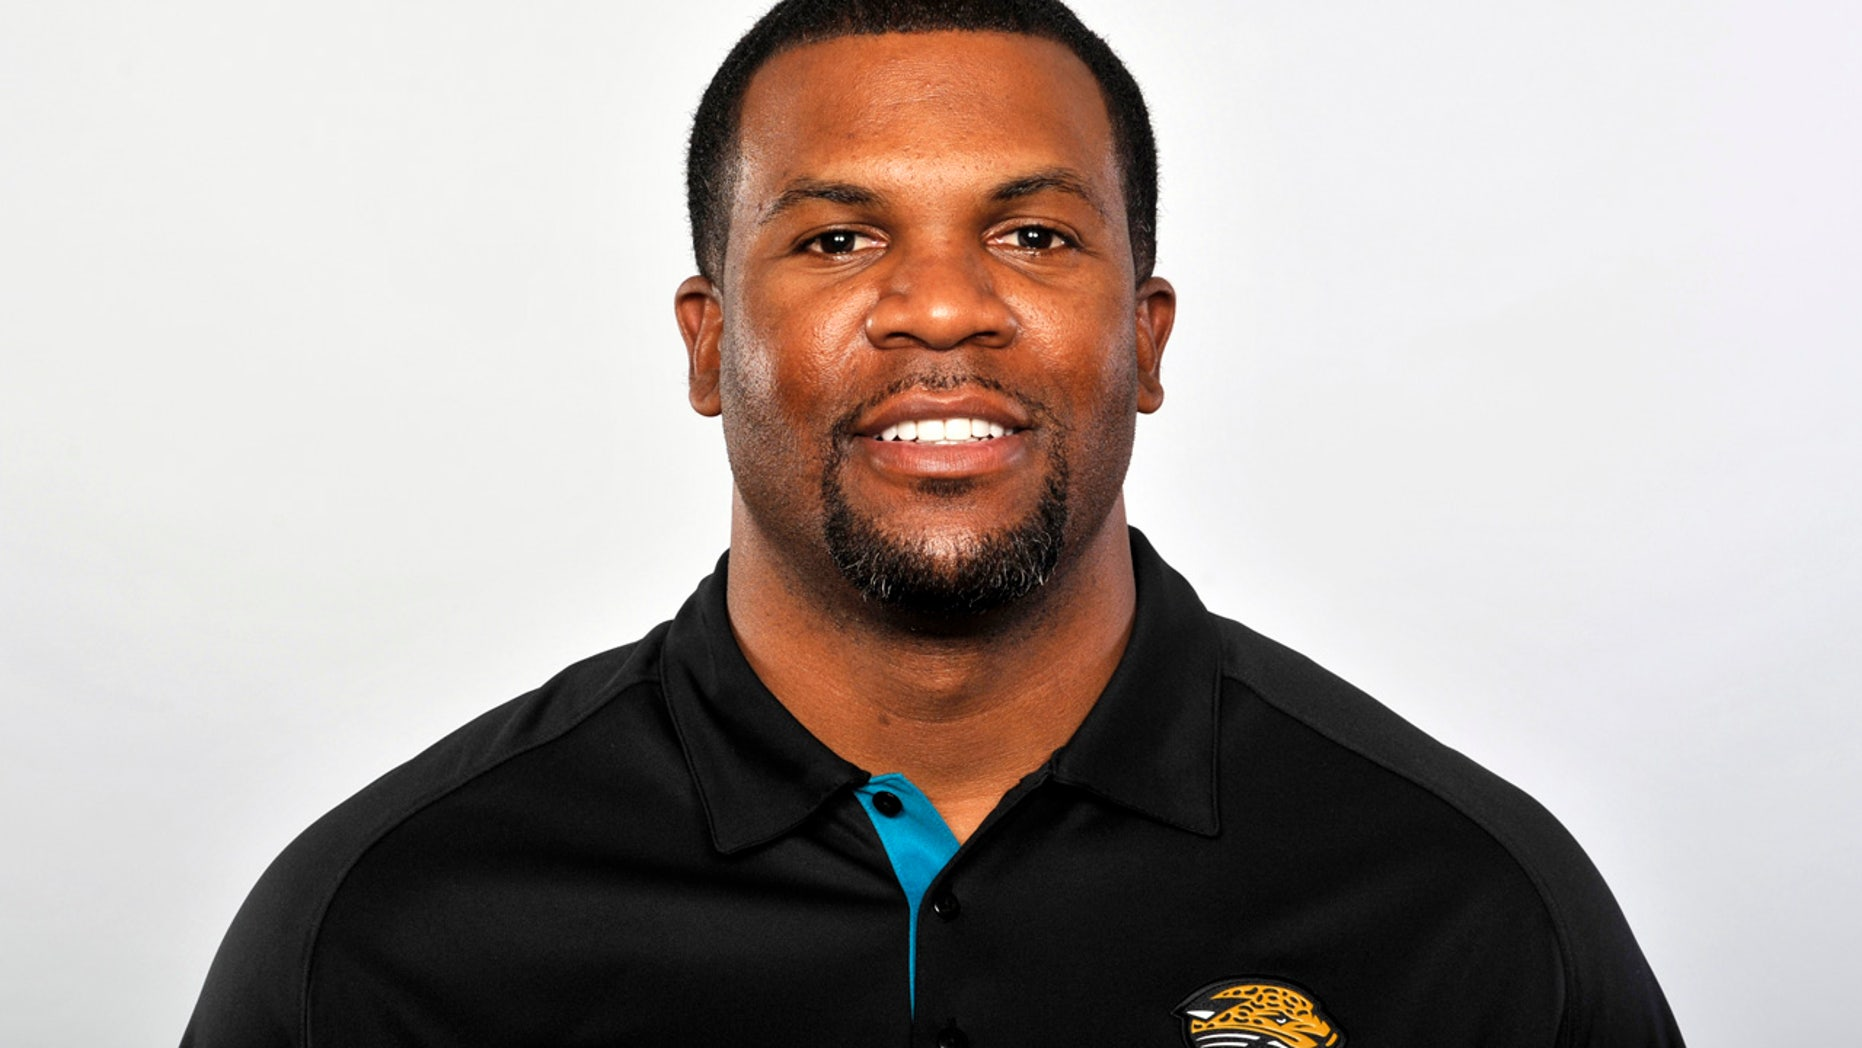 Marlon McCree is pictured in 2012, when he was the Jacksonville Jaguars assistant defensive backs coach.